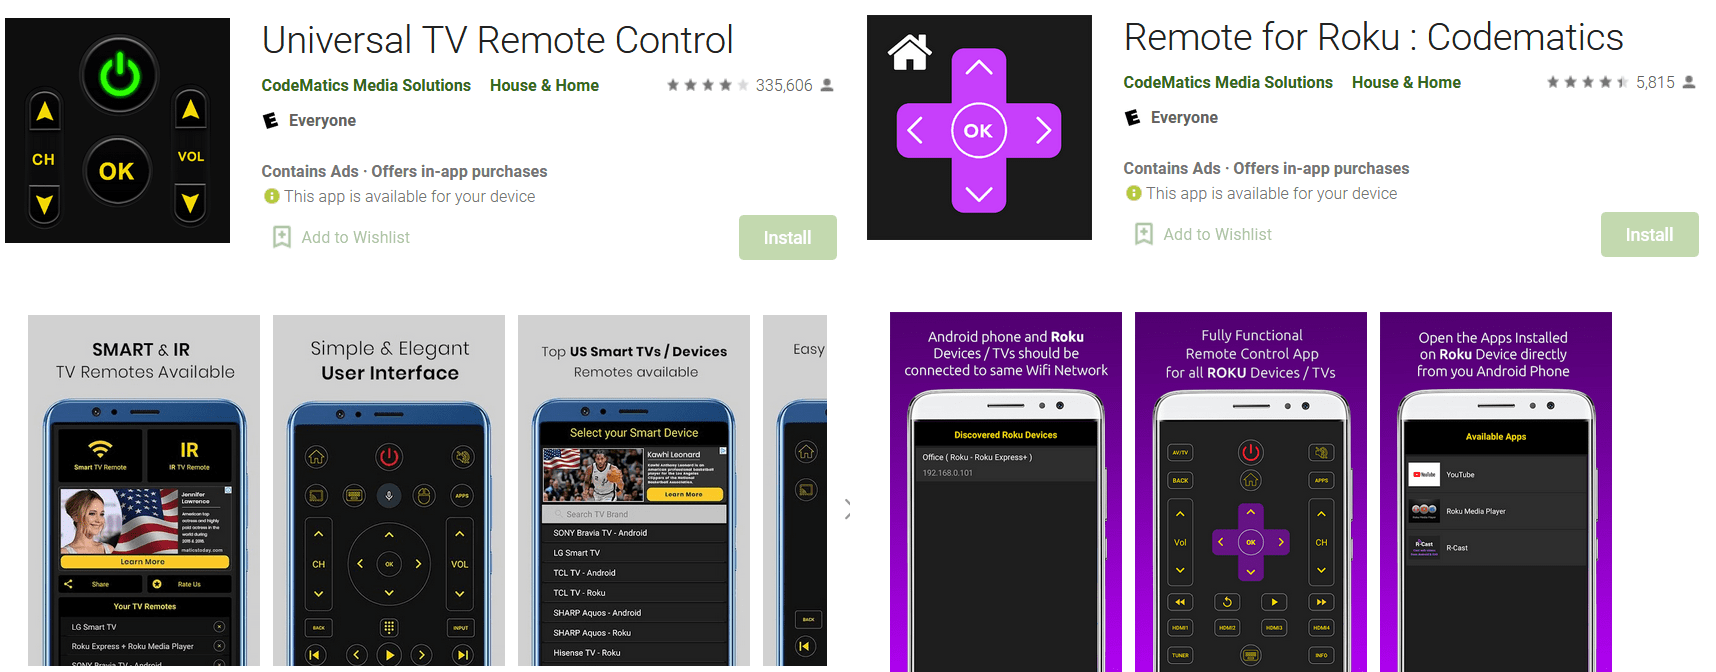 Exposed universal TV remote control apps<br>